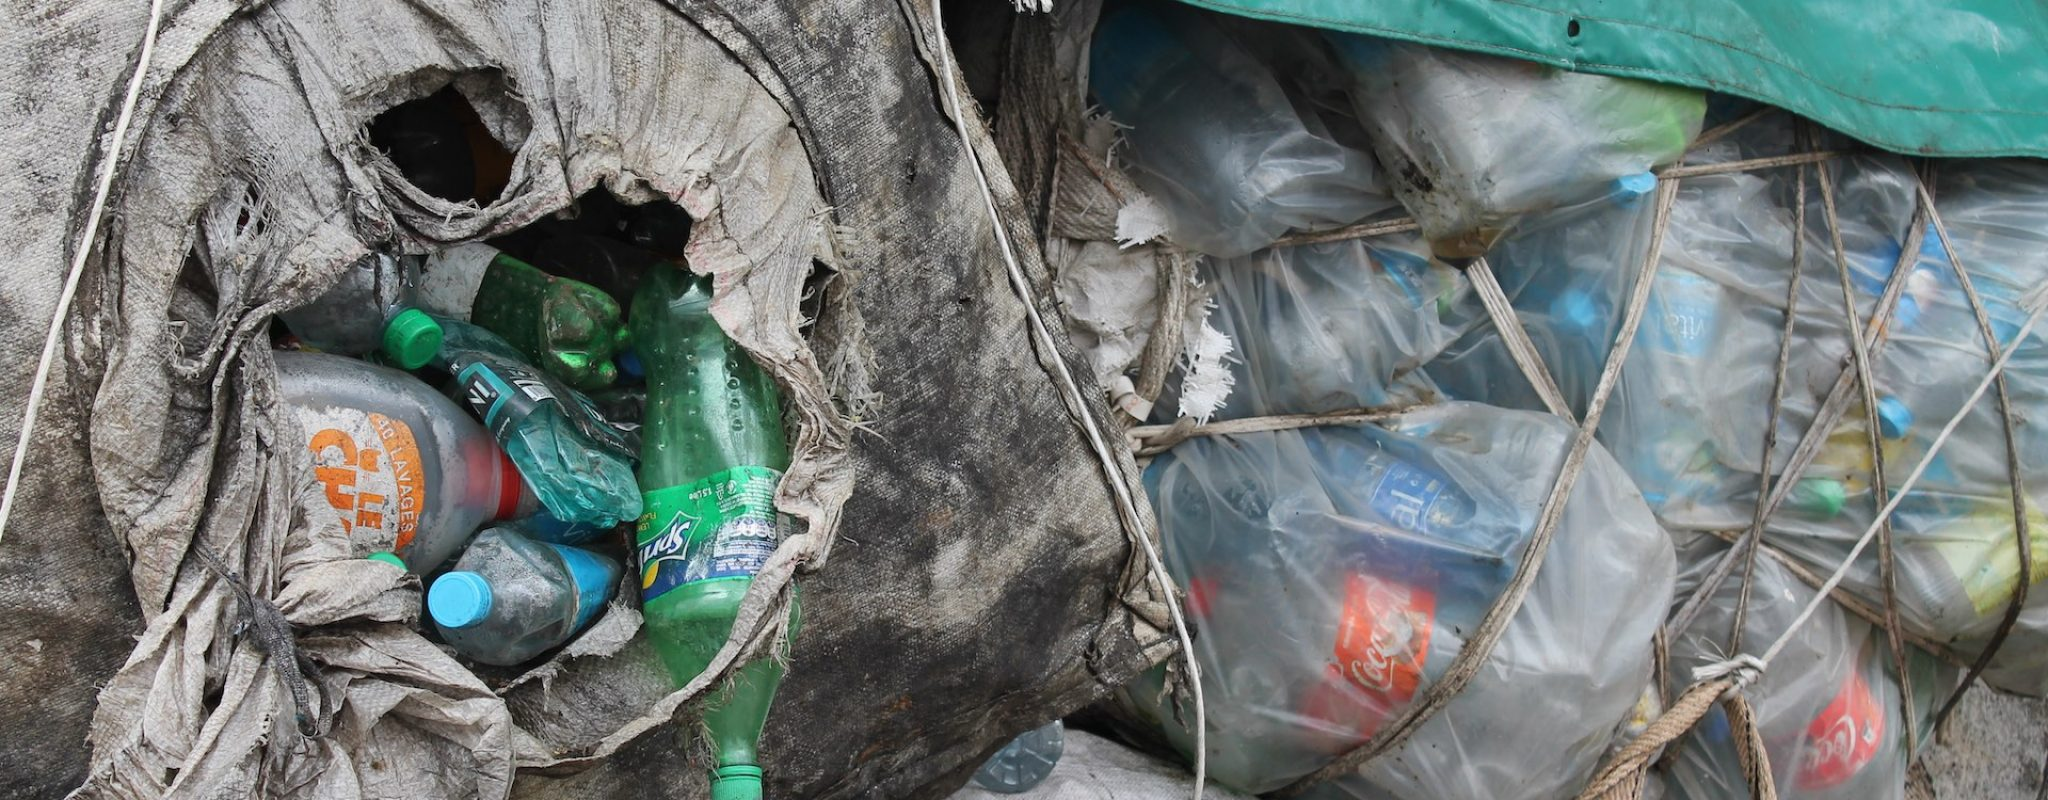 Plastic wate collection in Sierra Leone